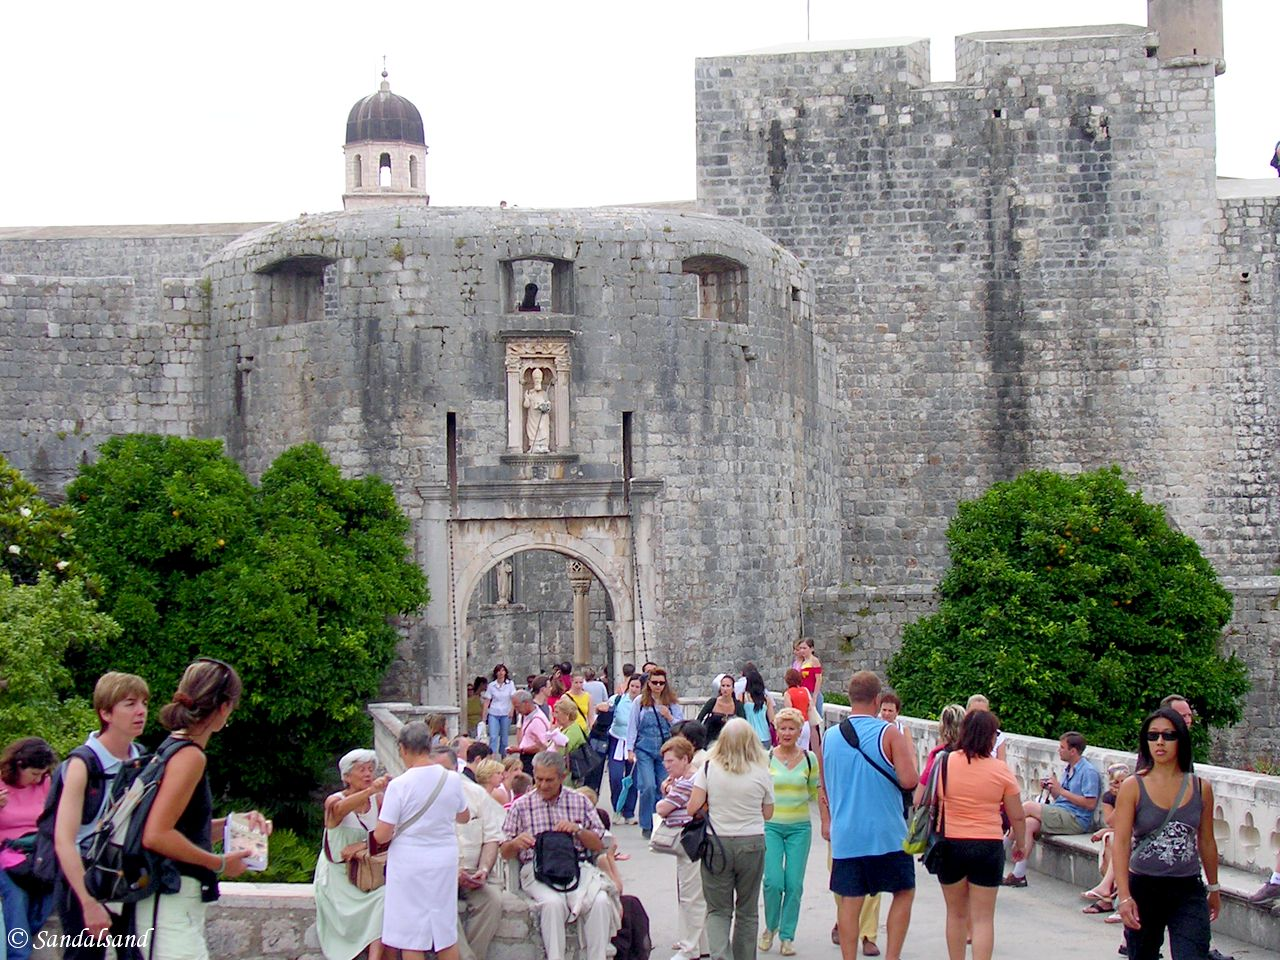 Croatia - Dubrovnik - Entrance to the Old Town